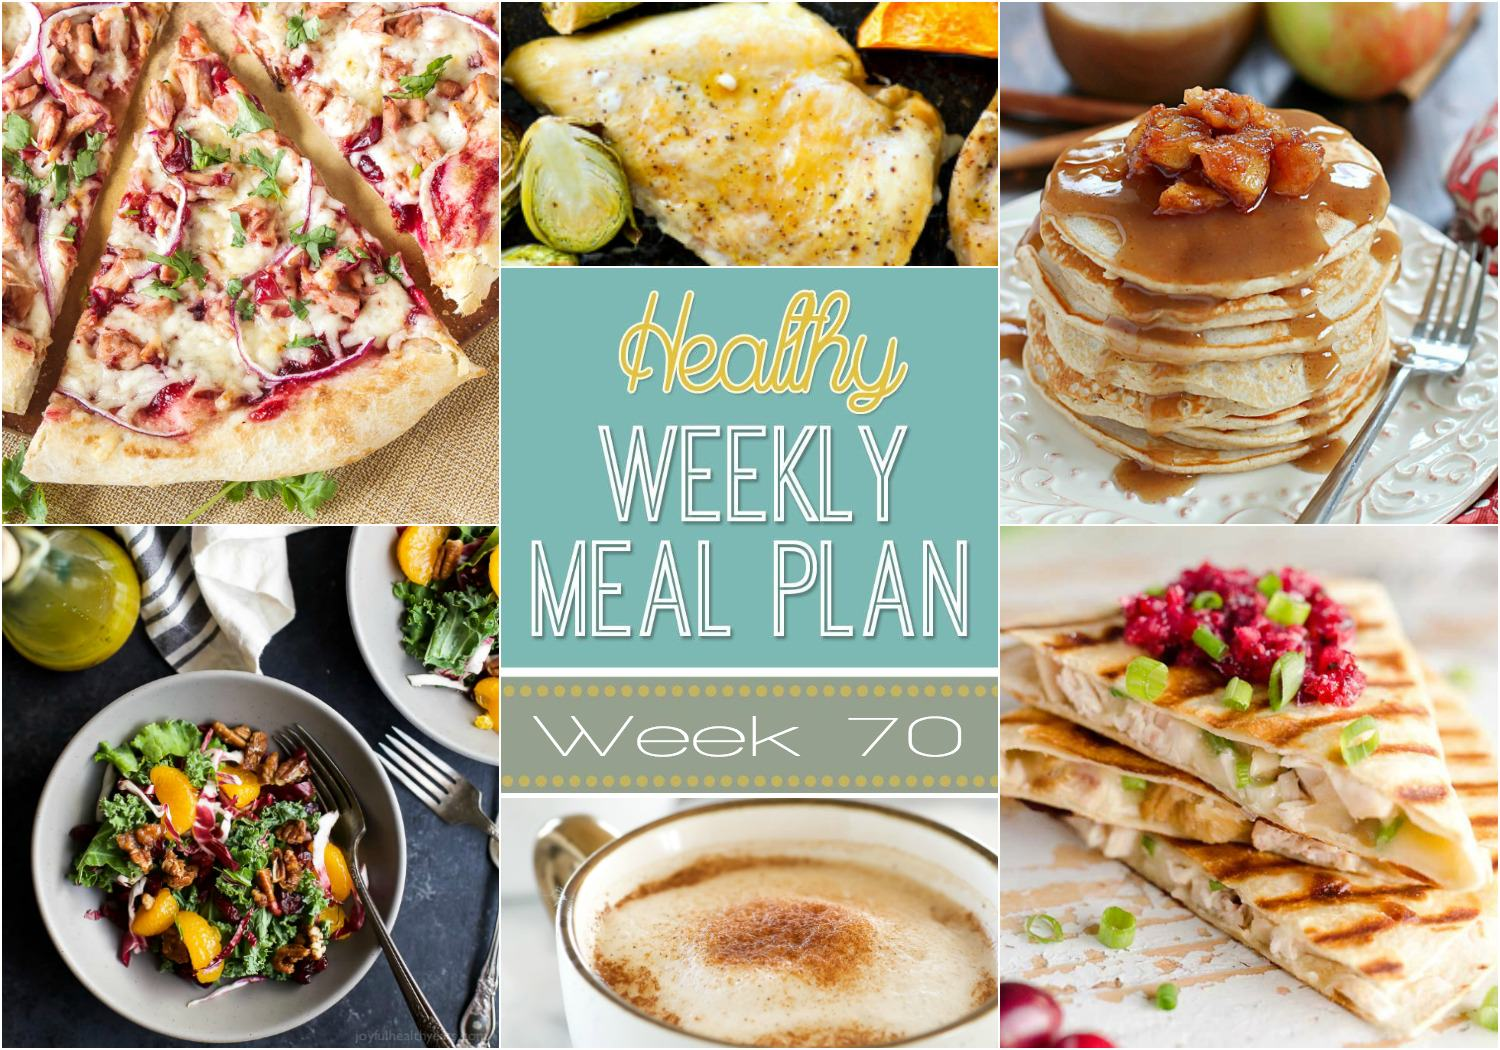 Healthy Meal Plan Week 70